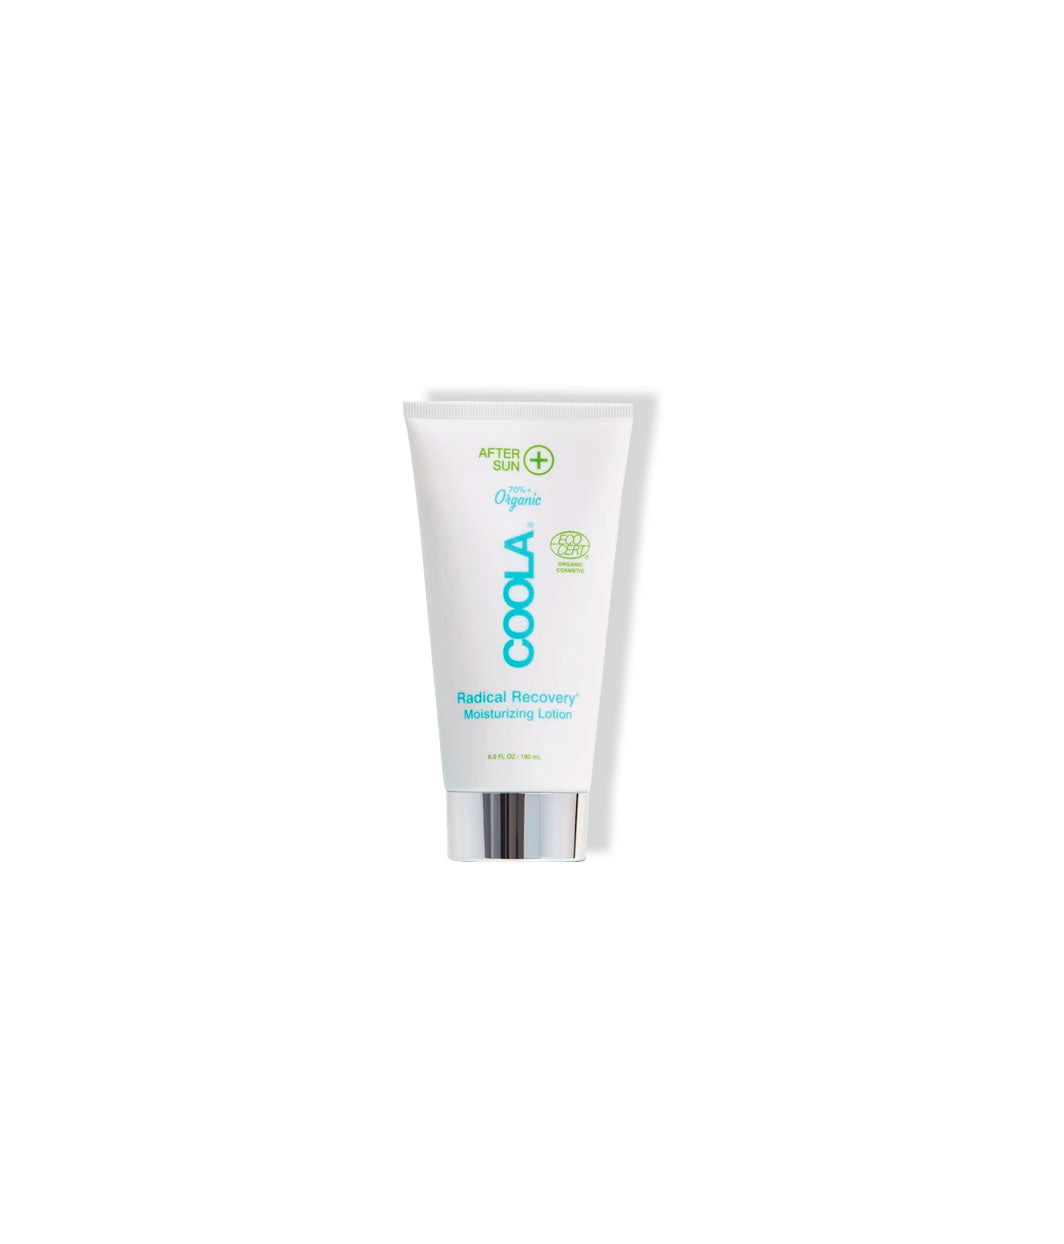 Radical Recovery Organic After Sun Lotion - LEMON LAINE - Body Moisturizers - Coola